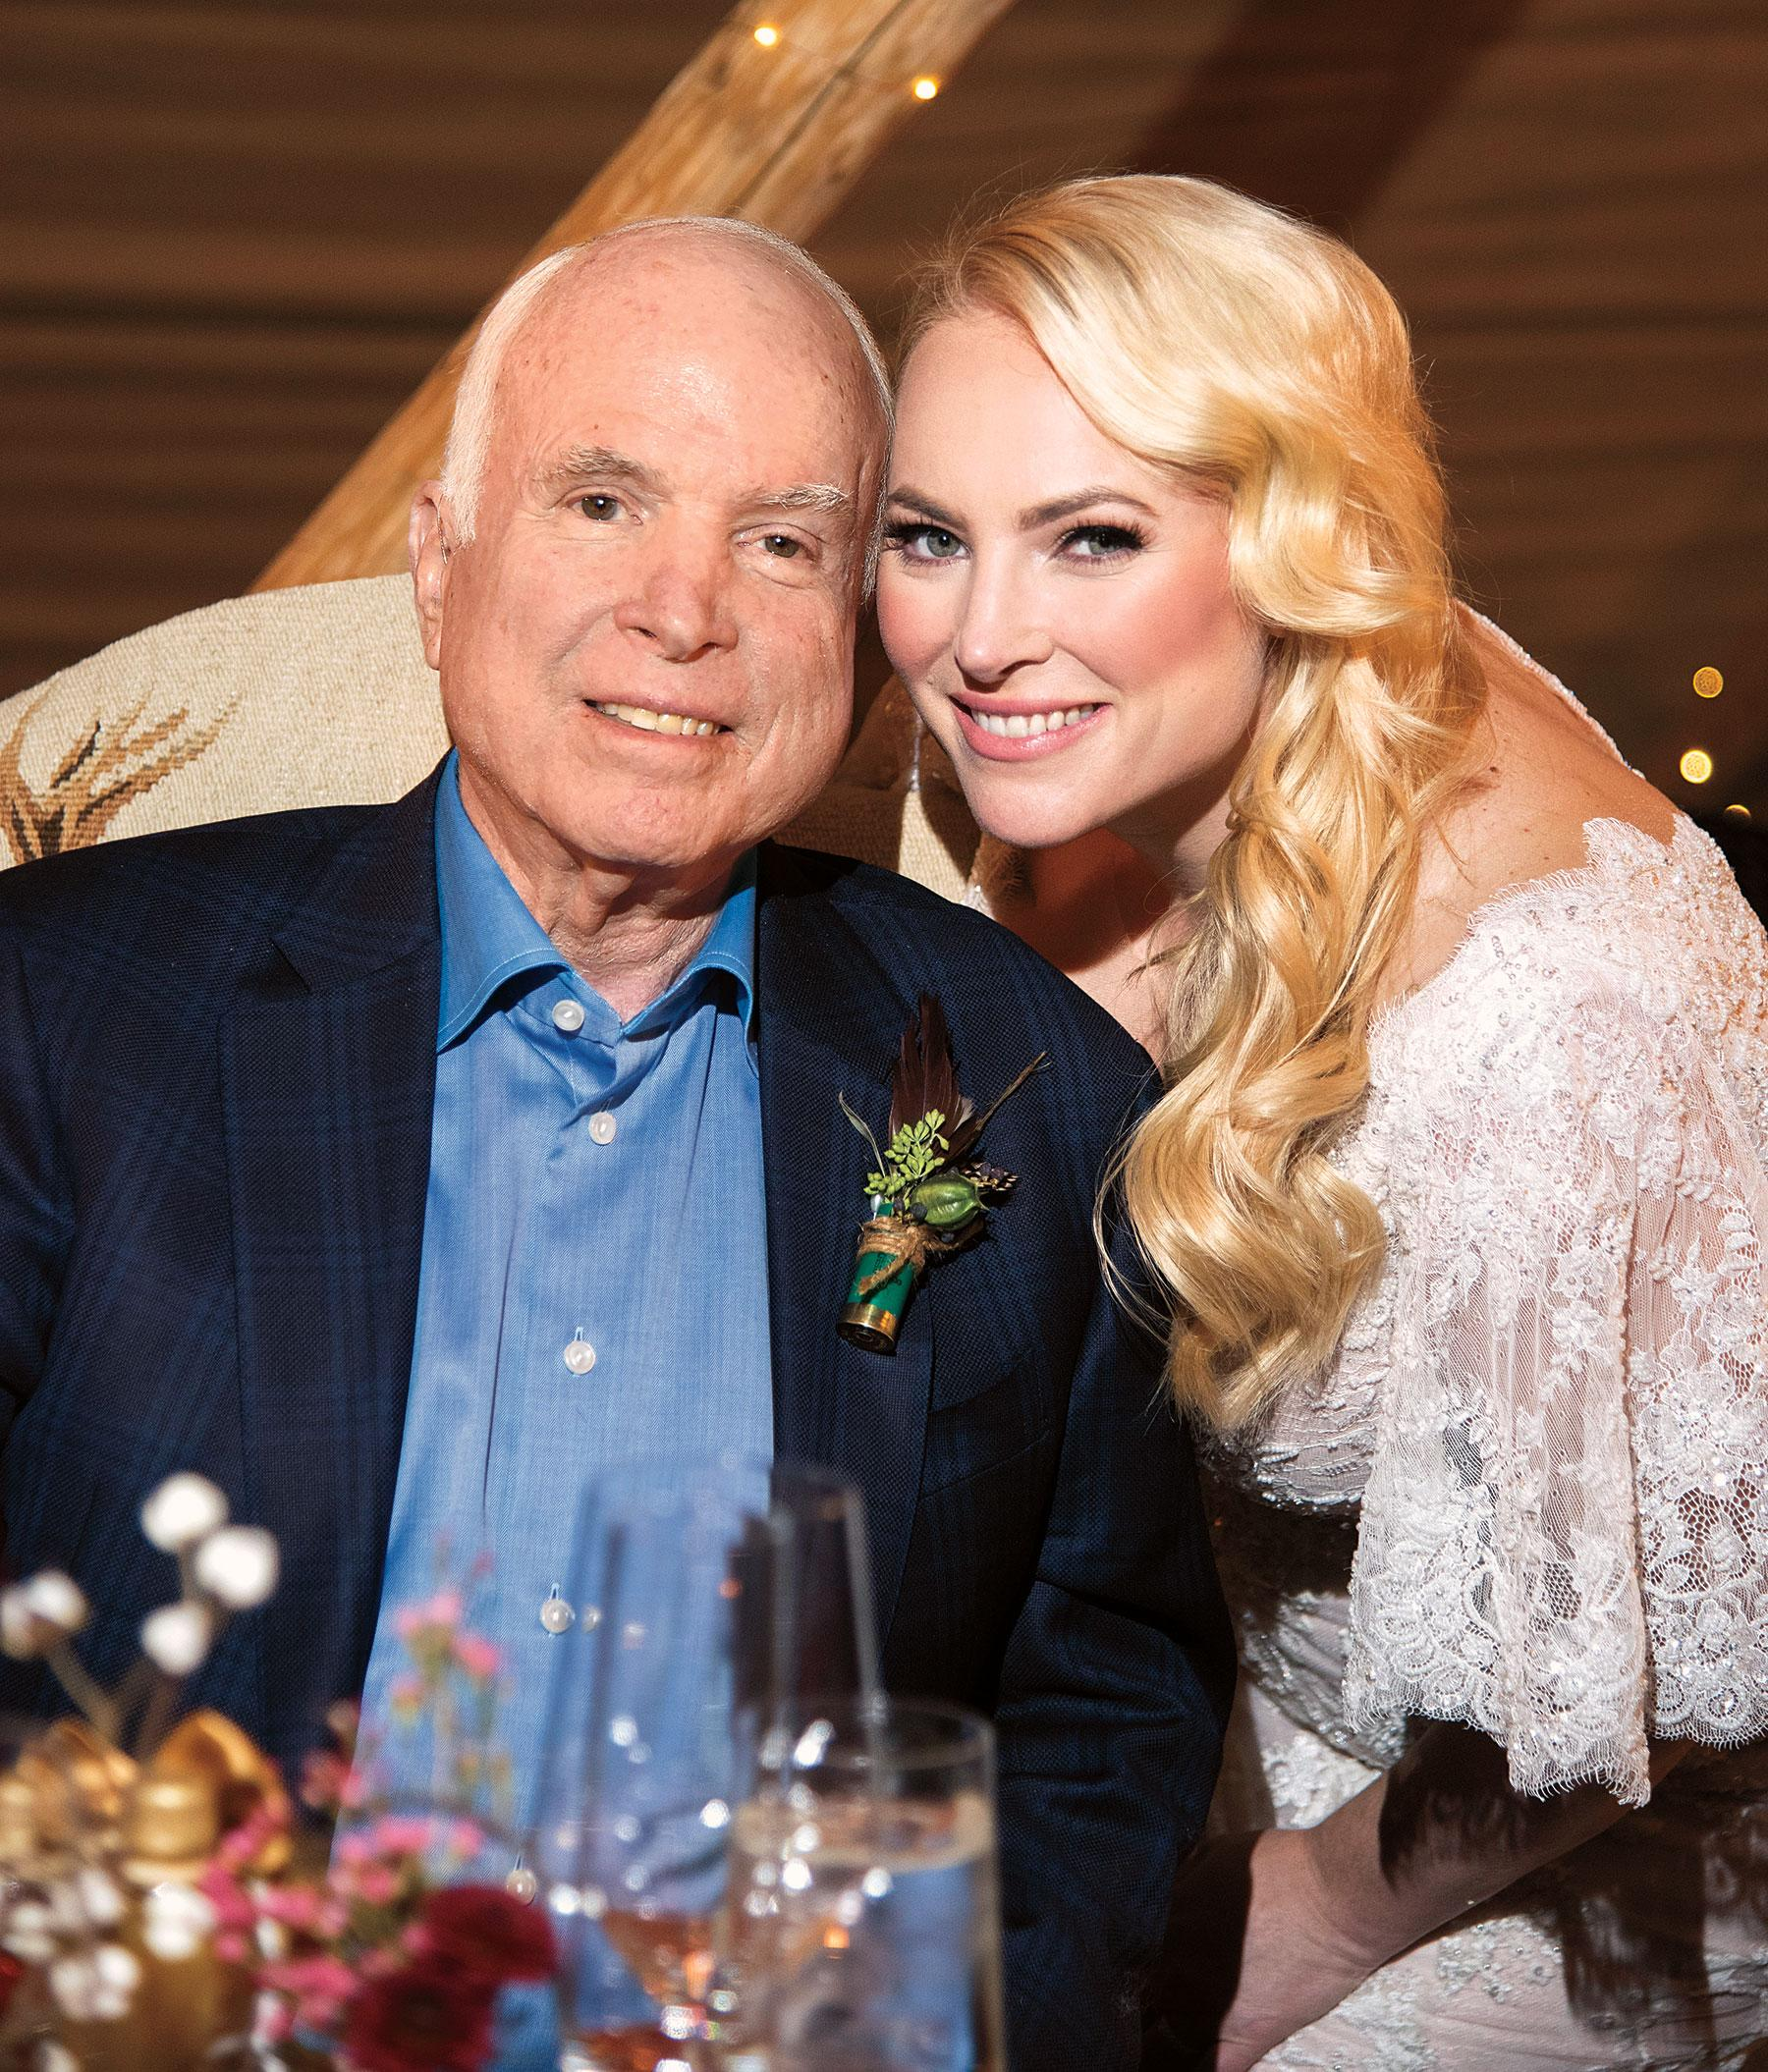 John Mccain Latest News Photos And Videos: John McCain Lived To See Daughter Meghan Get Married: 'I